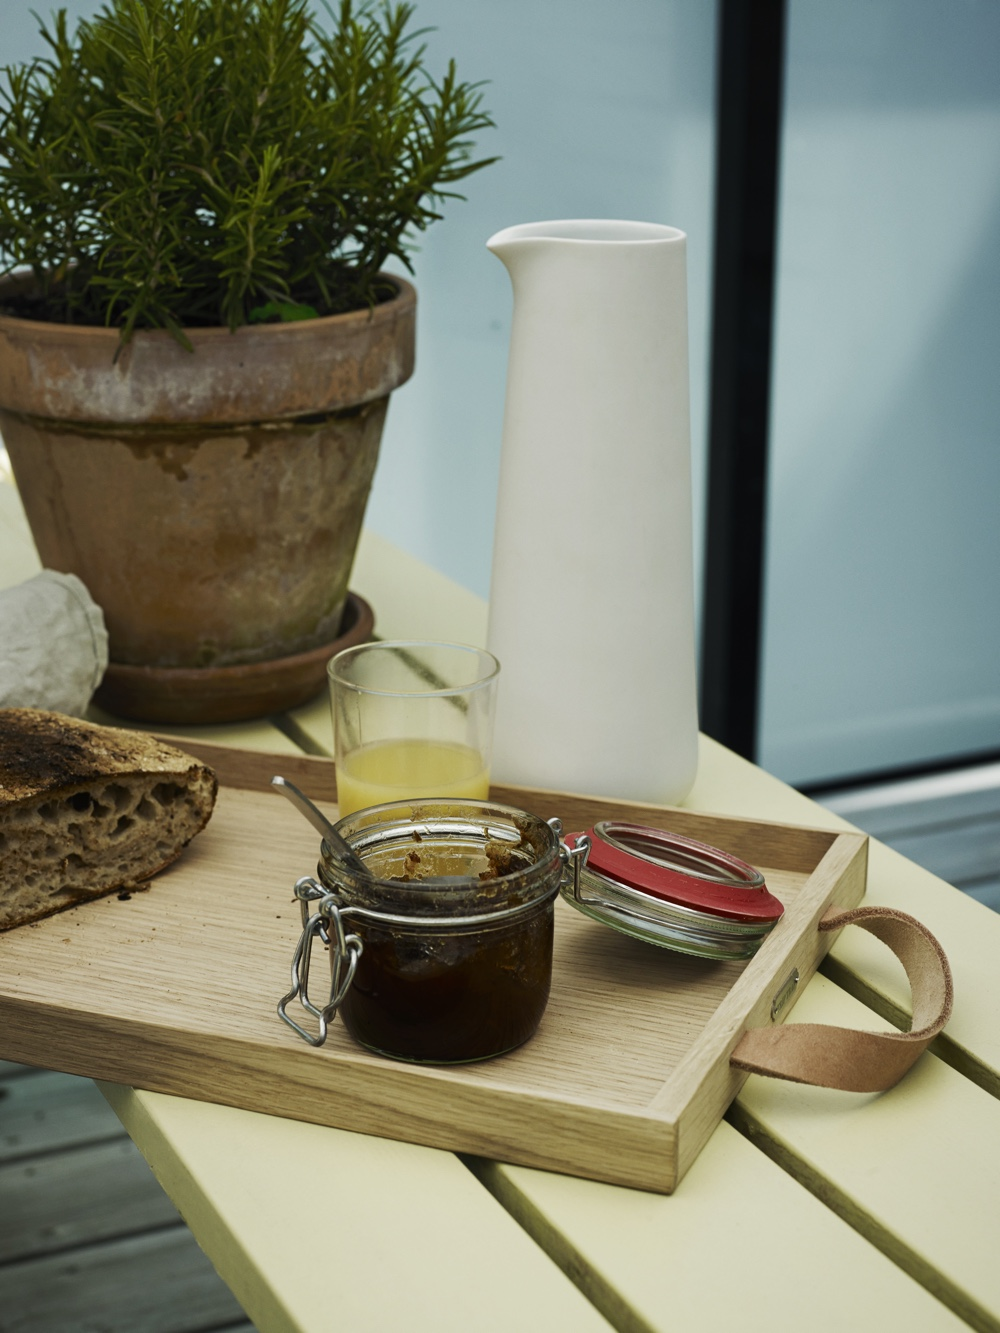 The Norr Tray. Image via Skagerrak Denmark.